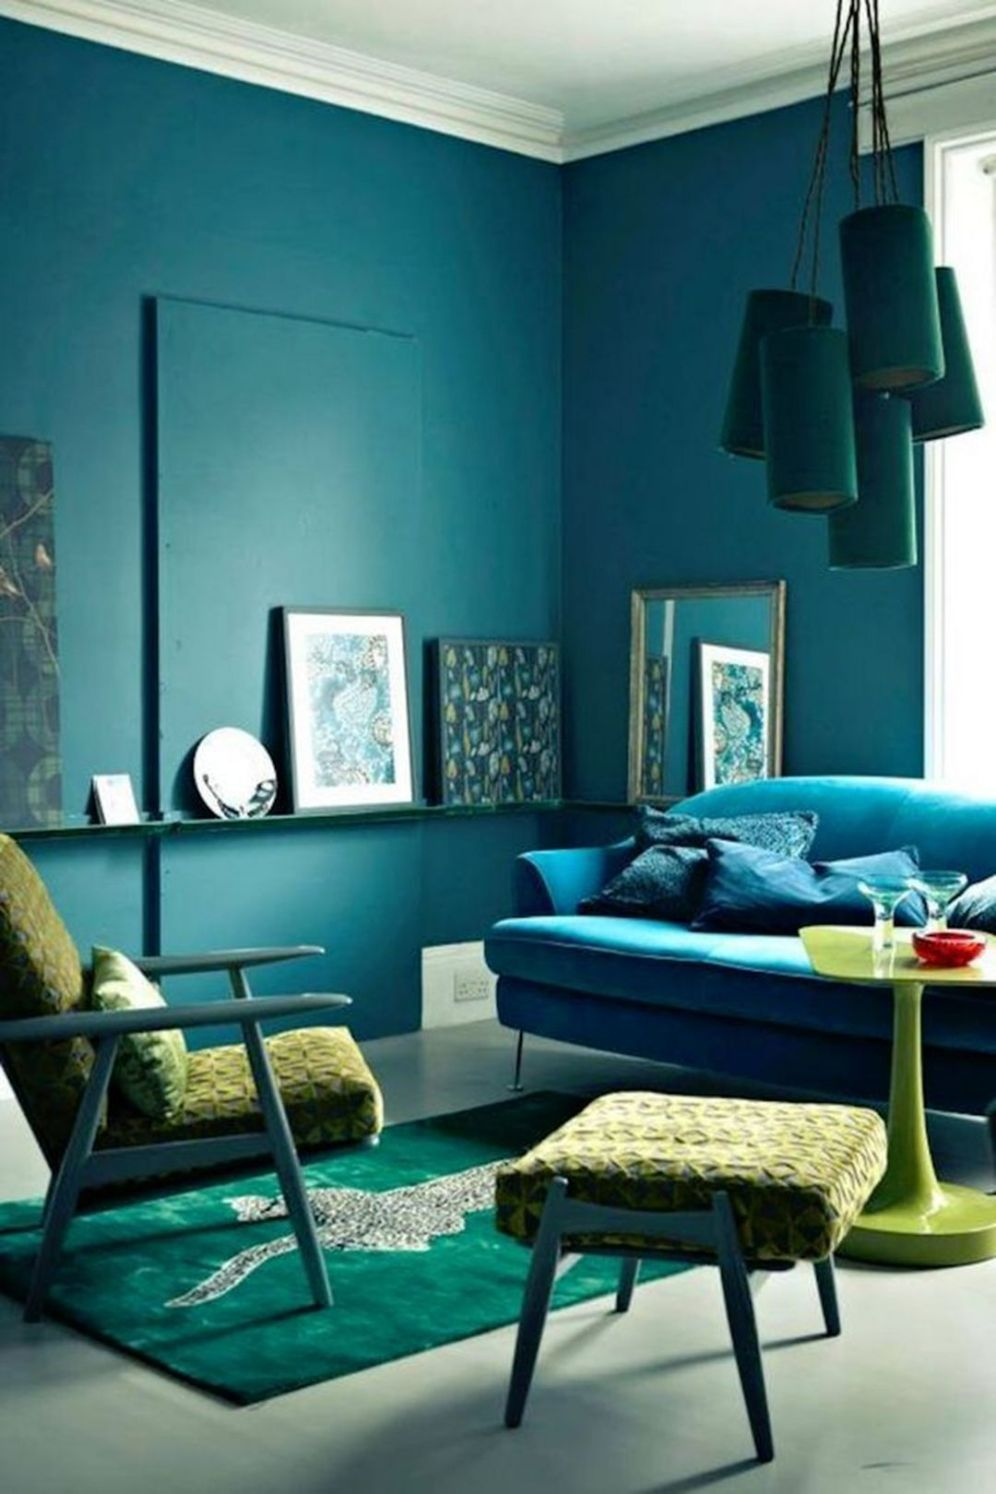 20 color harmony interior design ideas for cool home on home interior colors living room id=21778